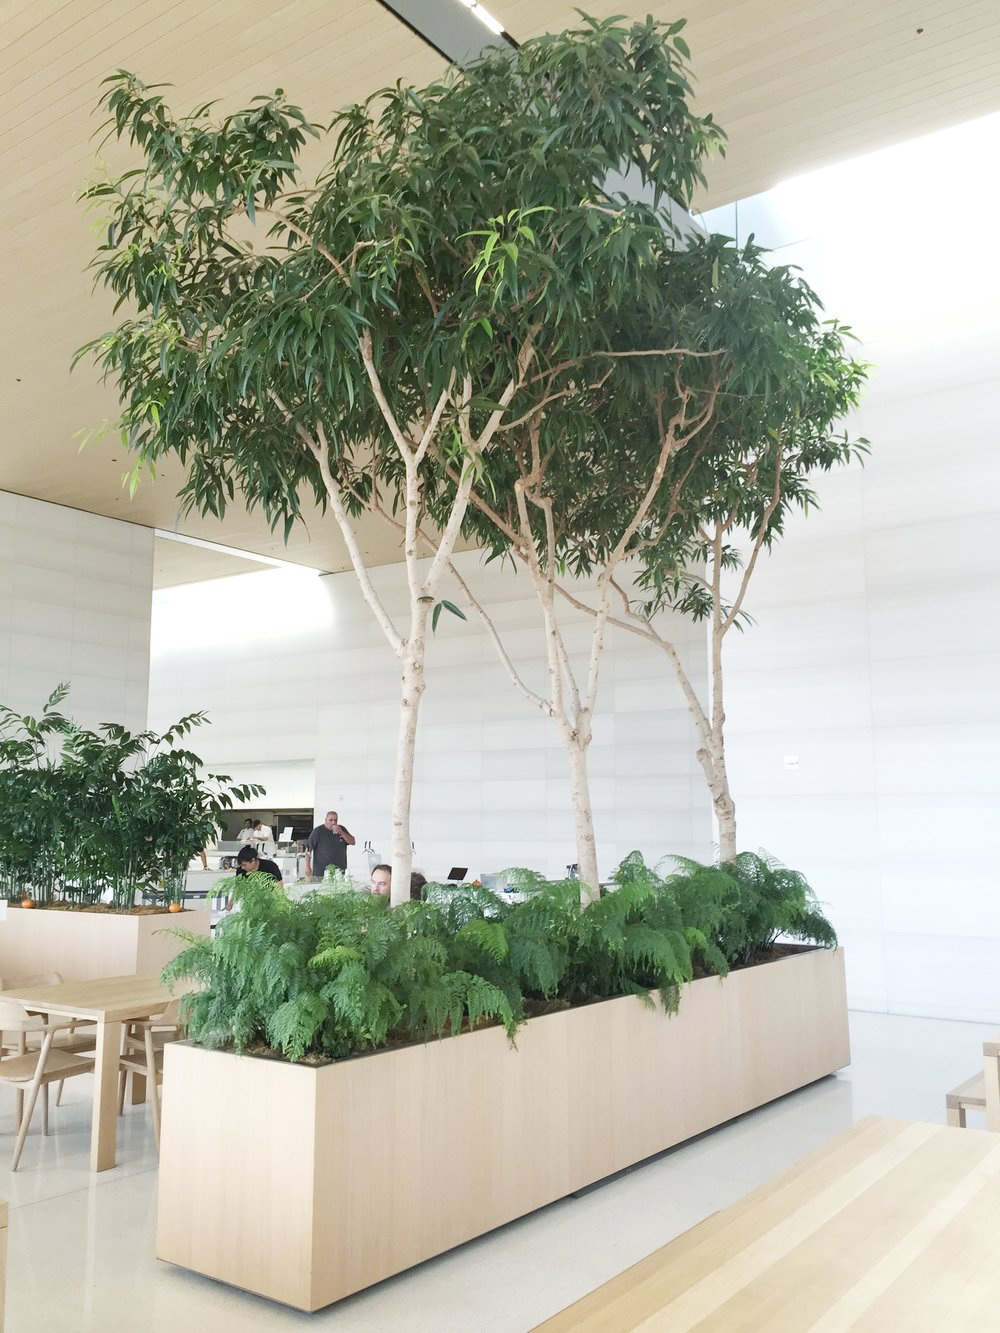 Brandon-Pruett-Ficus-tech-office.jpg